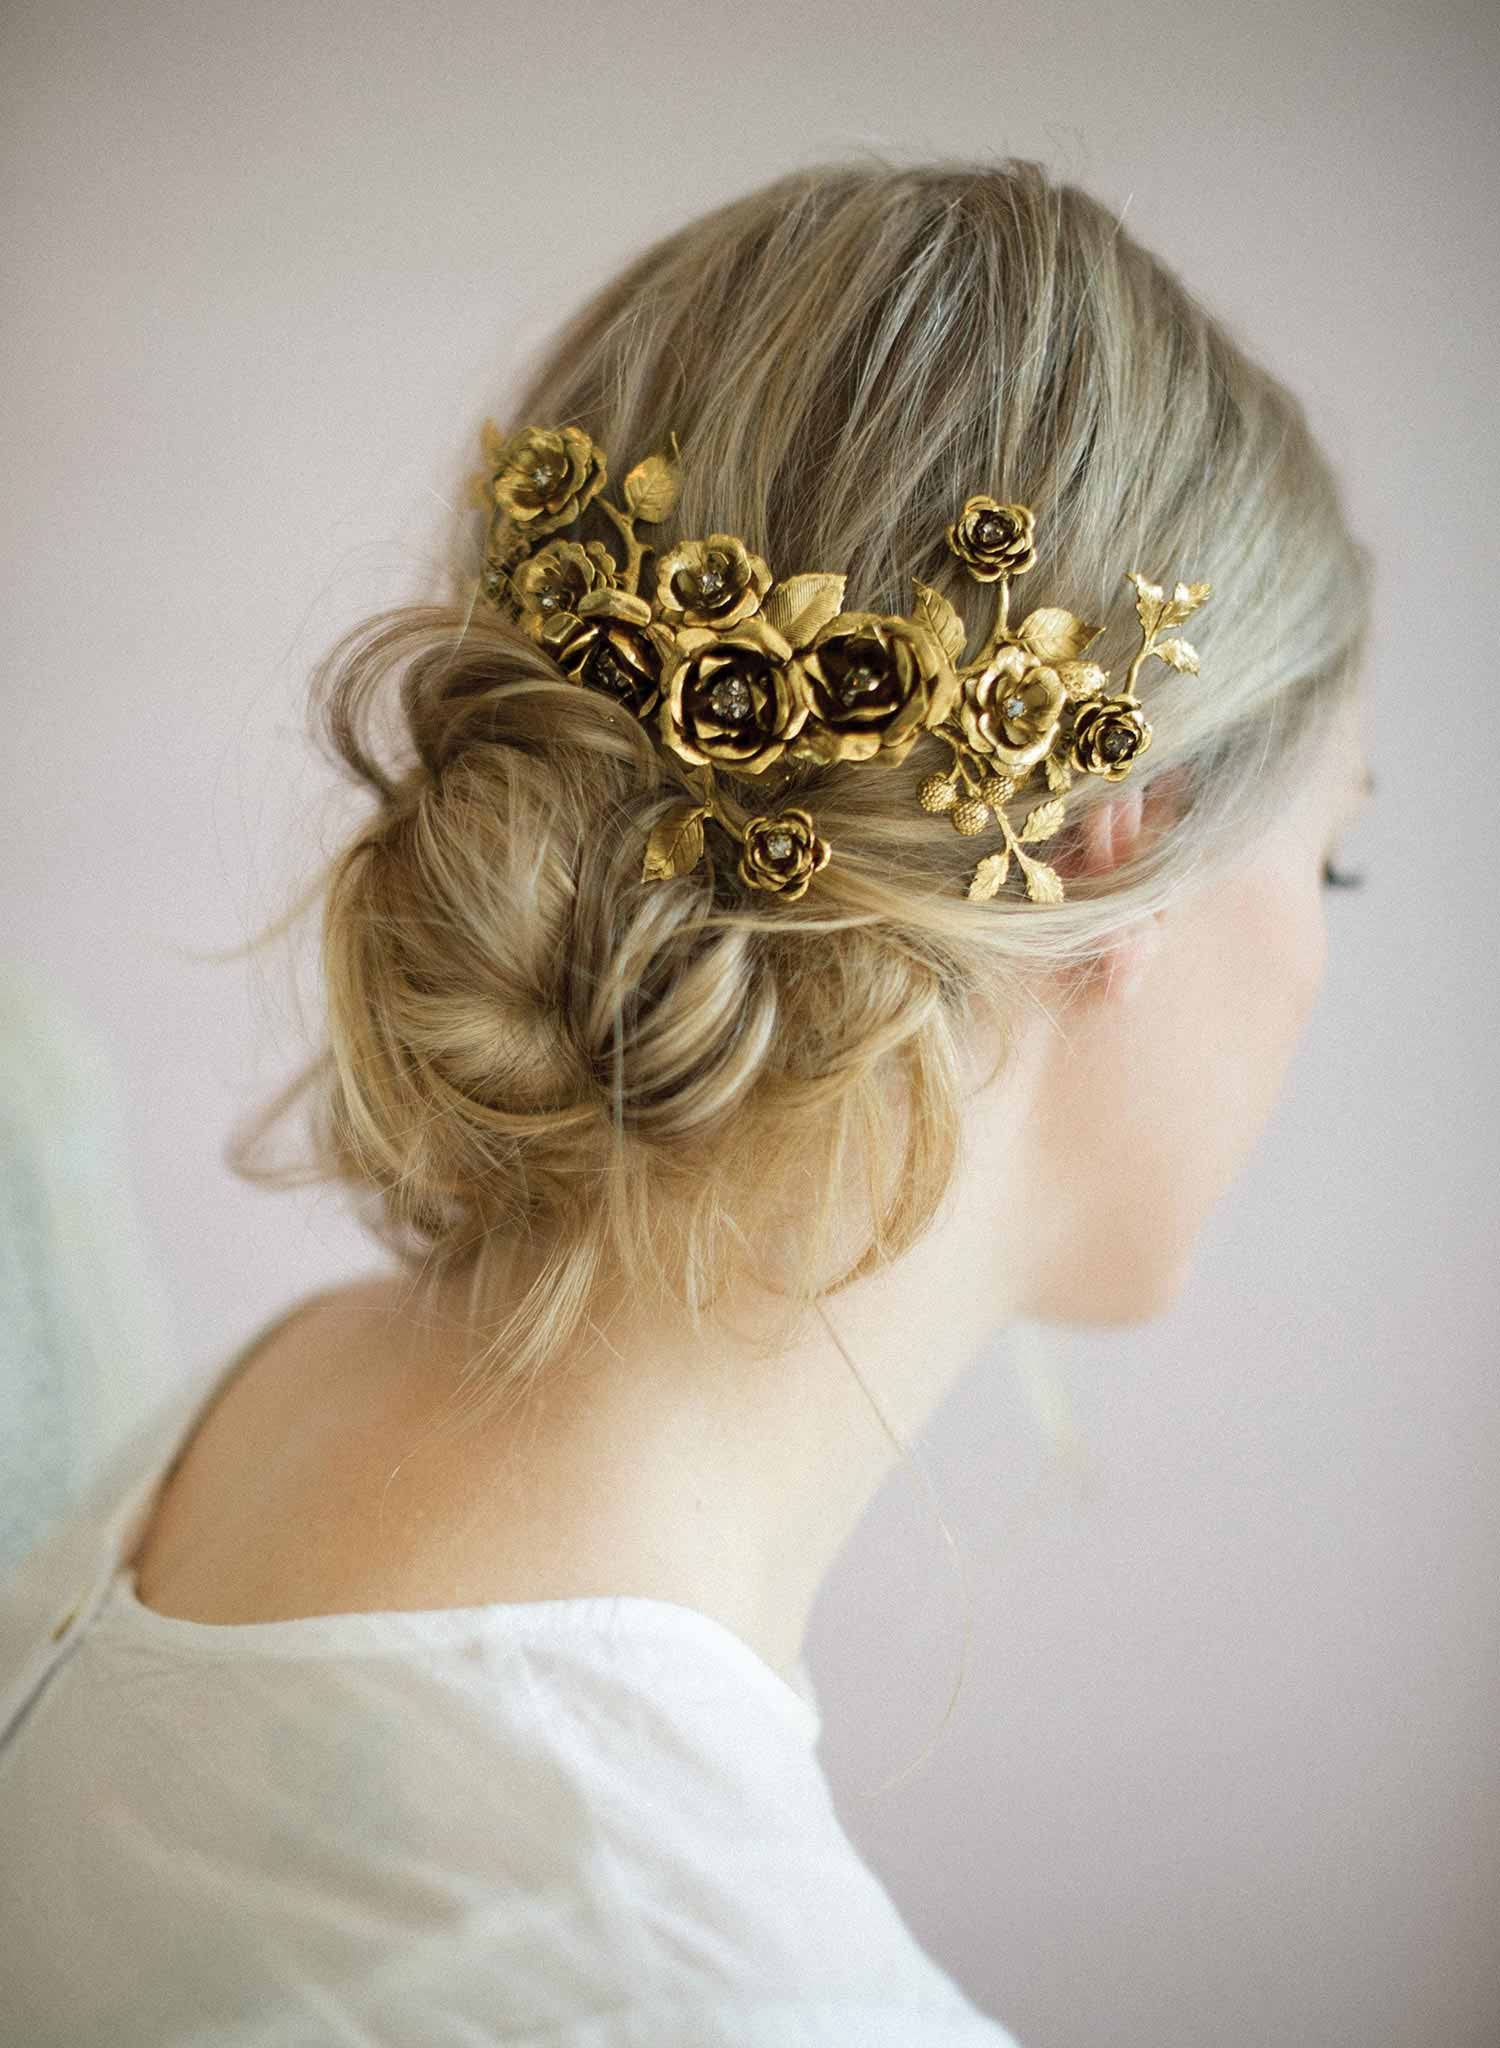 Br Bridal Headpieces Twigs And Honey -  rose bridal headpiece gold plated antique inspired handmade twigs and honey